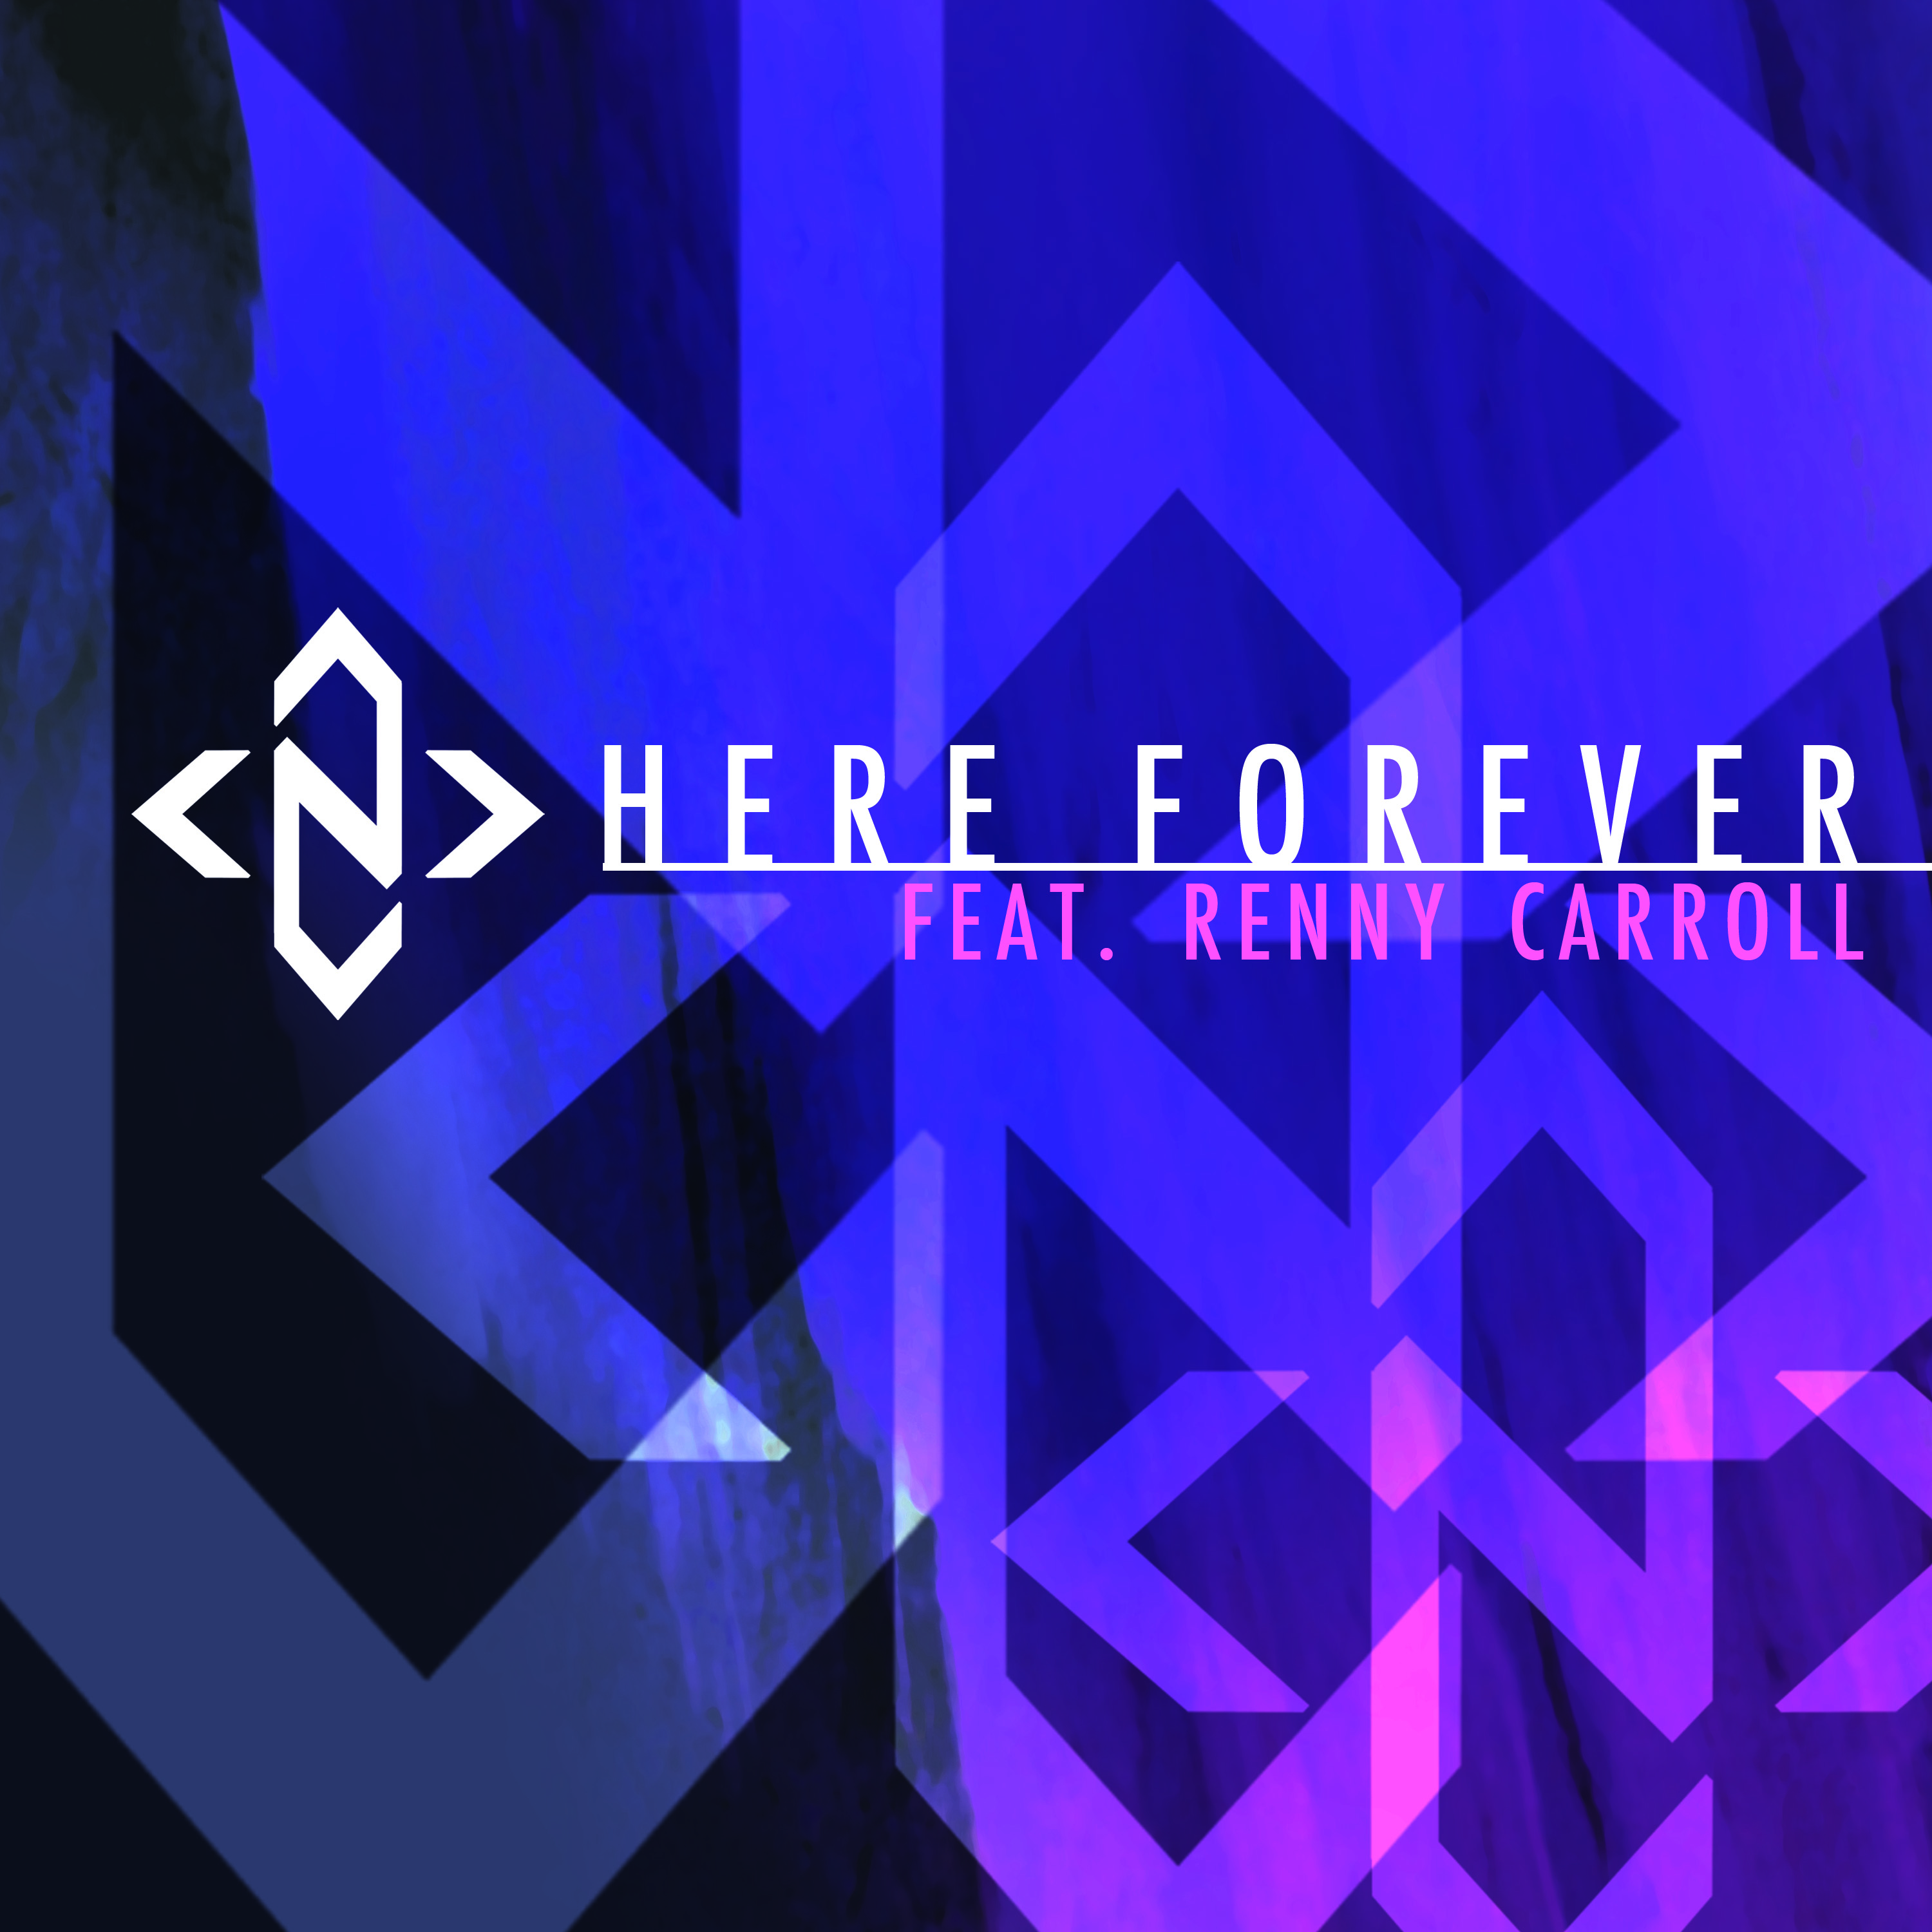 'Here Forever' – New Single out now!